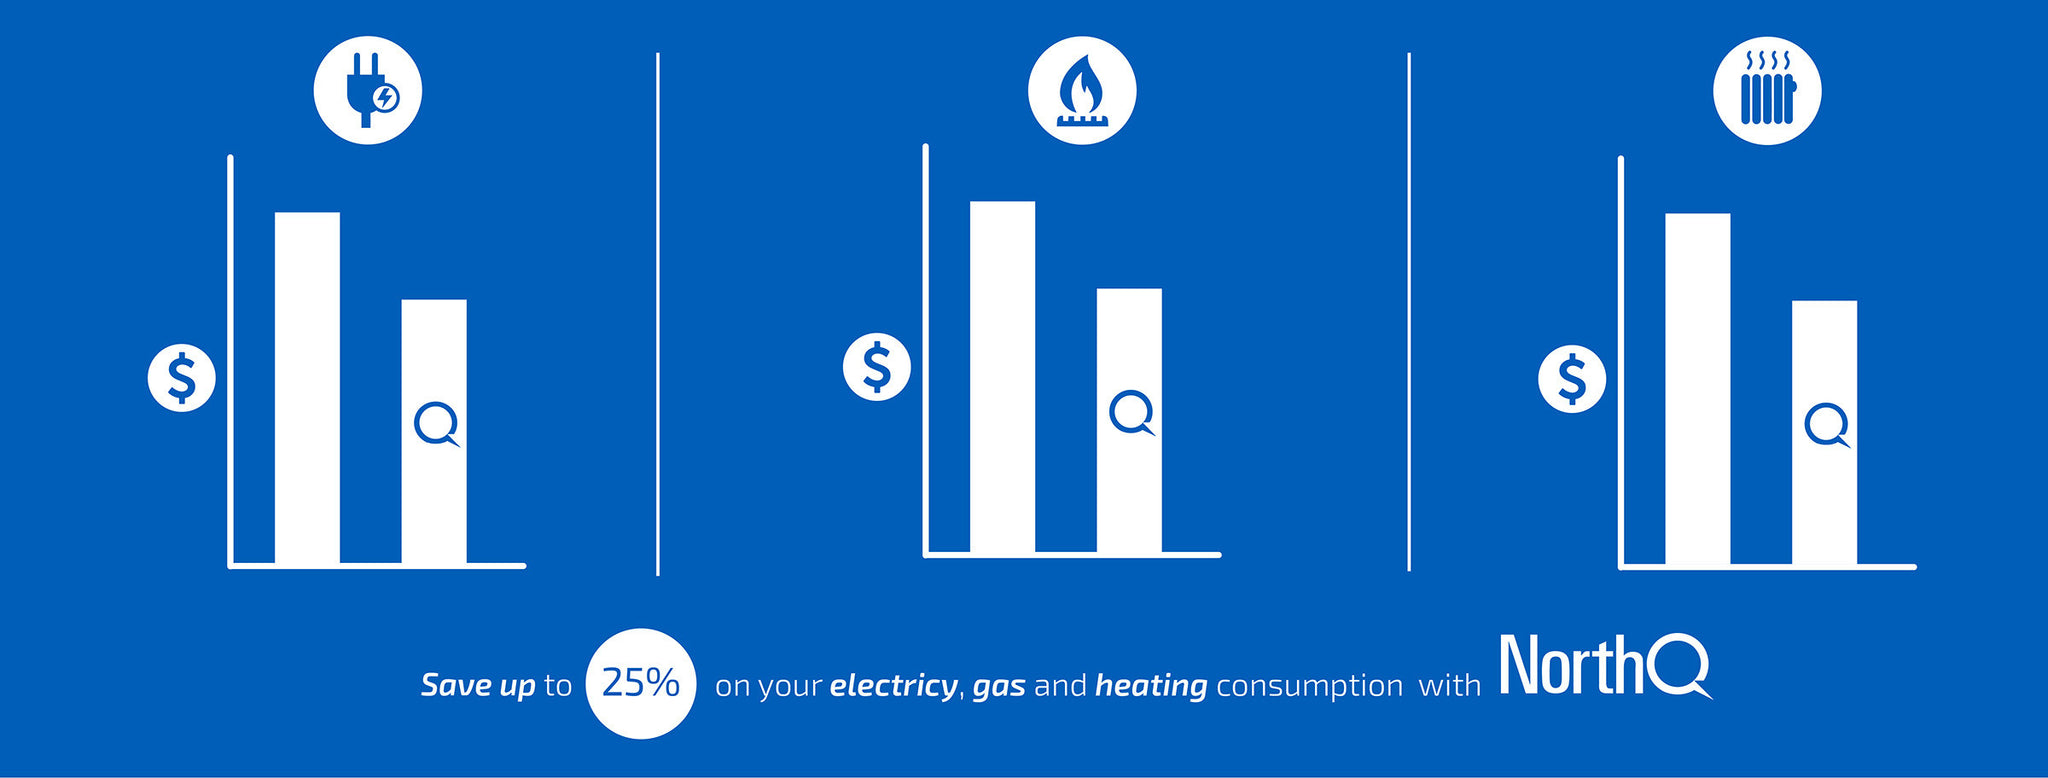 savings, heating, electricity, gas